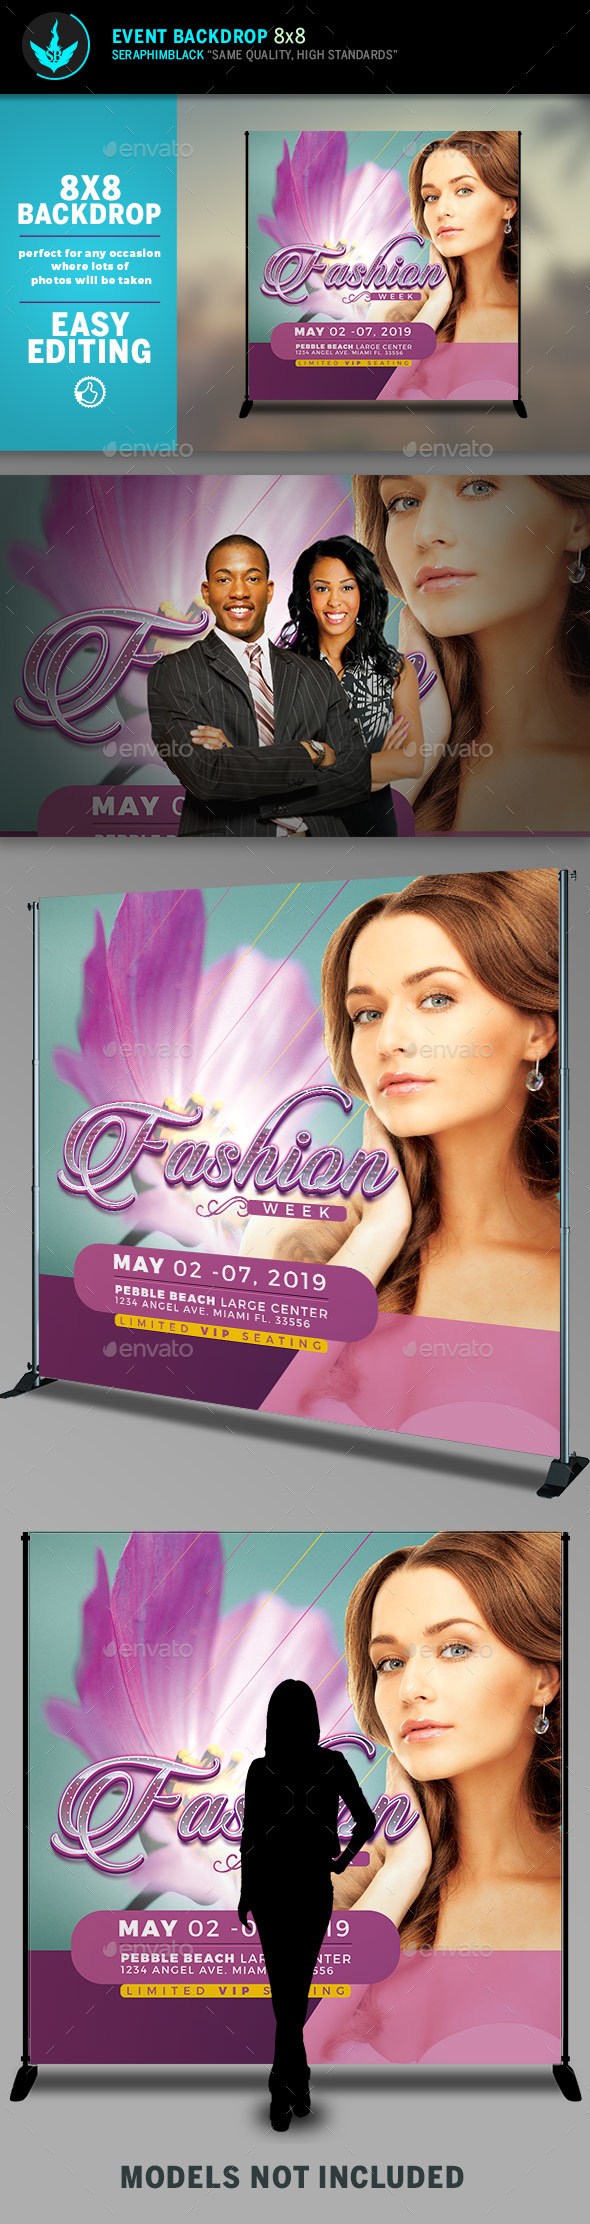 Fashion Week 8x8 Event Backdrop Template - Signage Print Templates